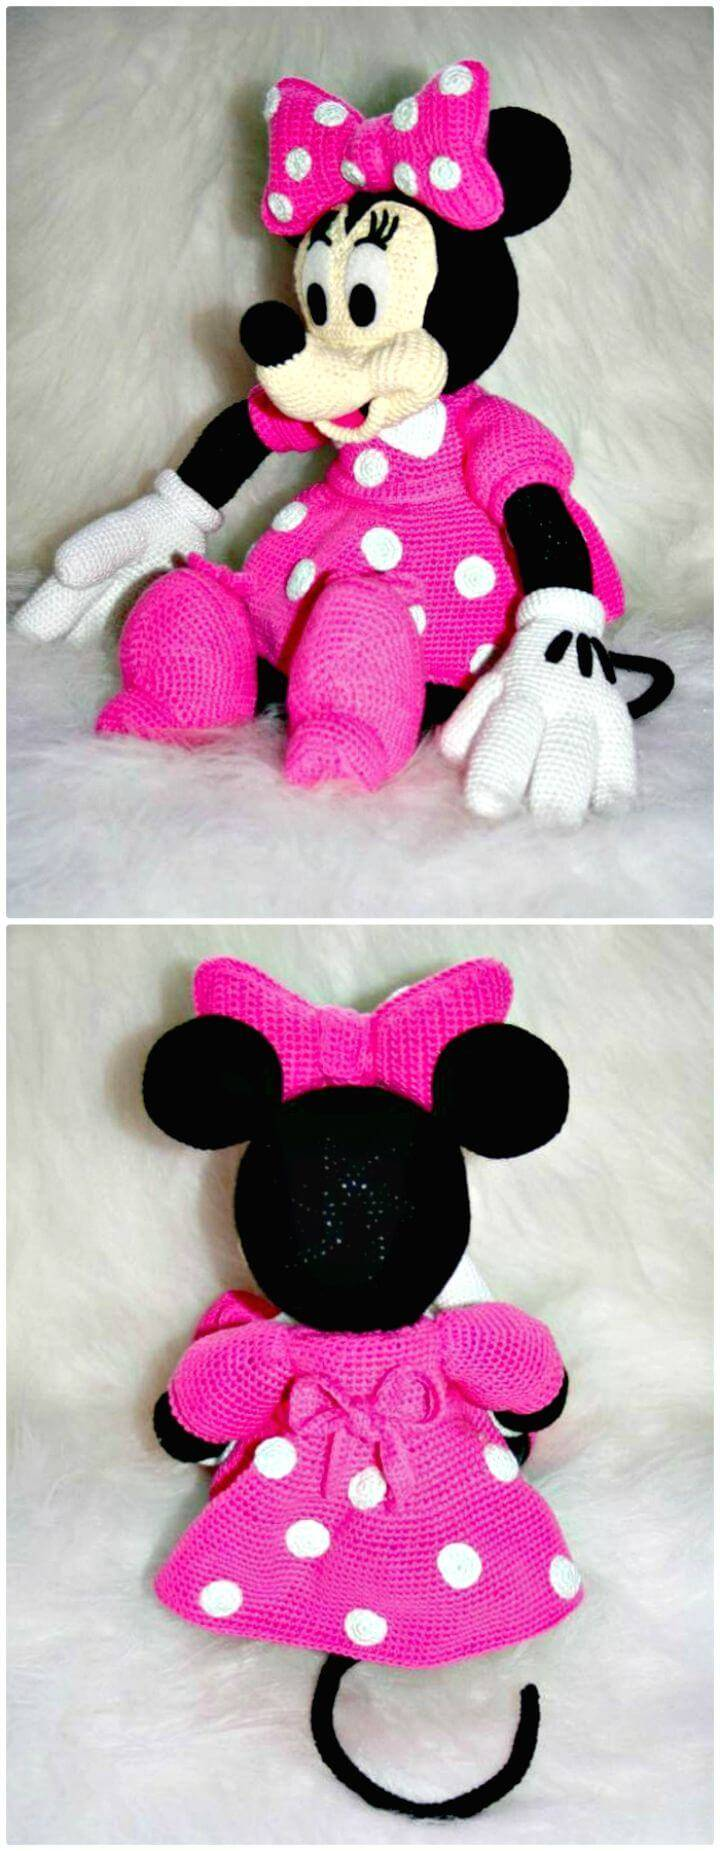 Free Crochet Disney Minnie Mouse Amigurumi Pattern